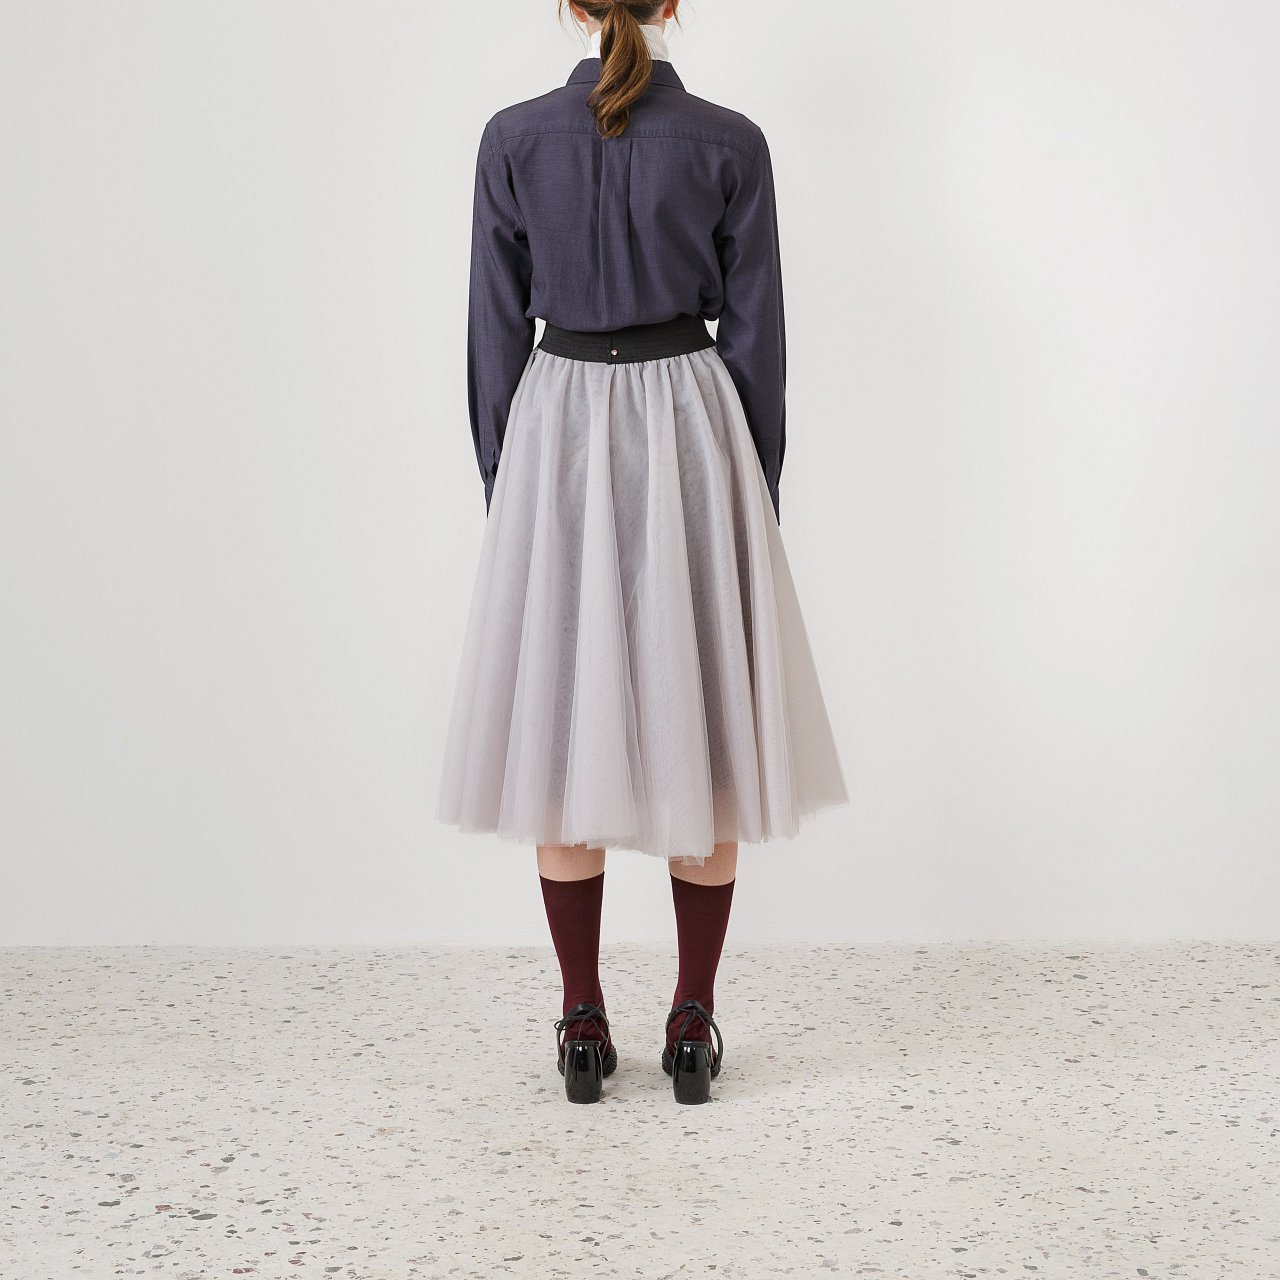 Product preview: Tulle Tutu Skirt Gray Midi